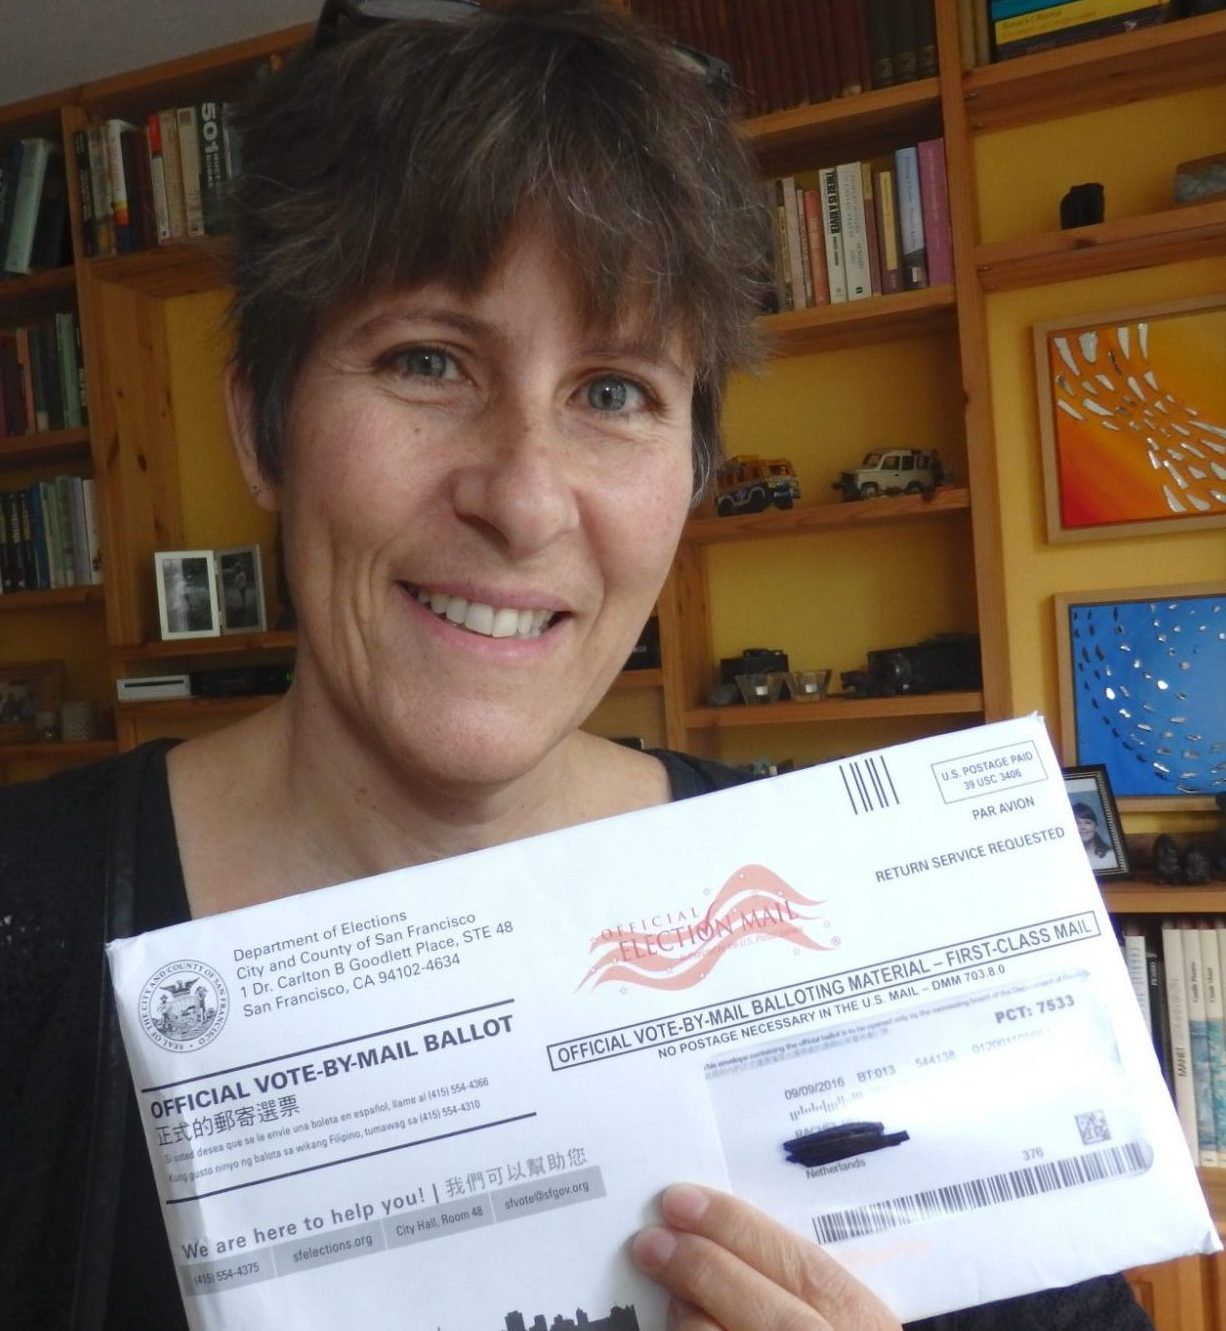 Me and my voter ballot